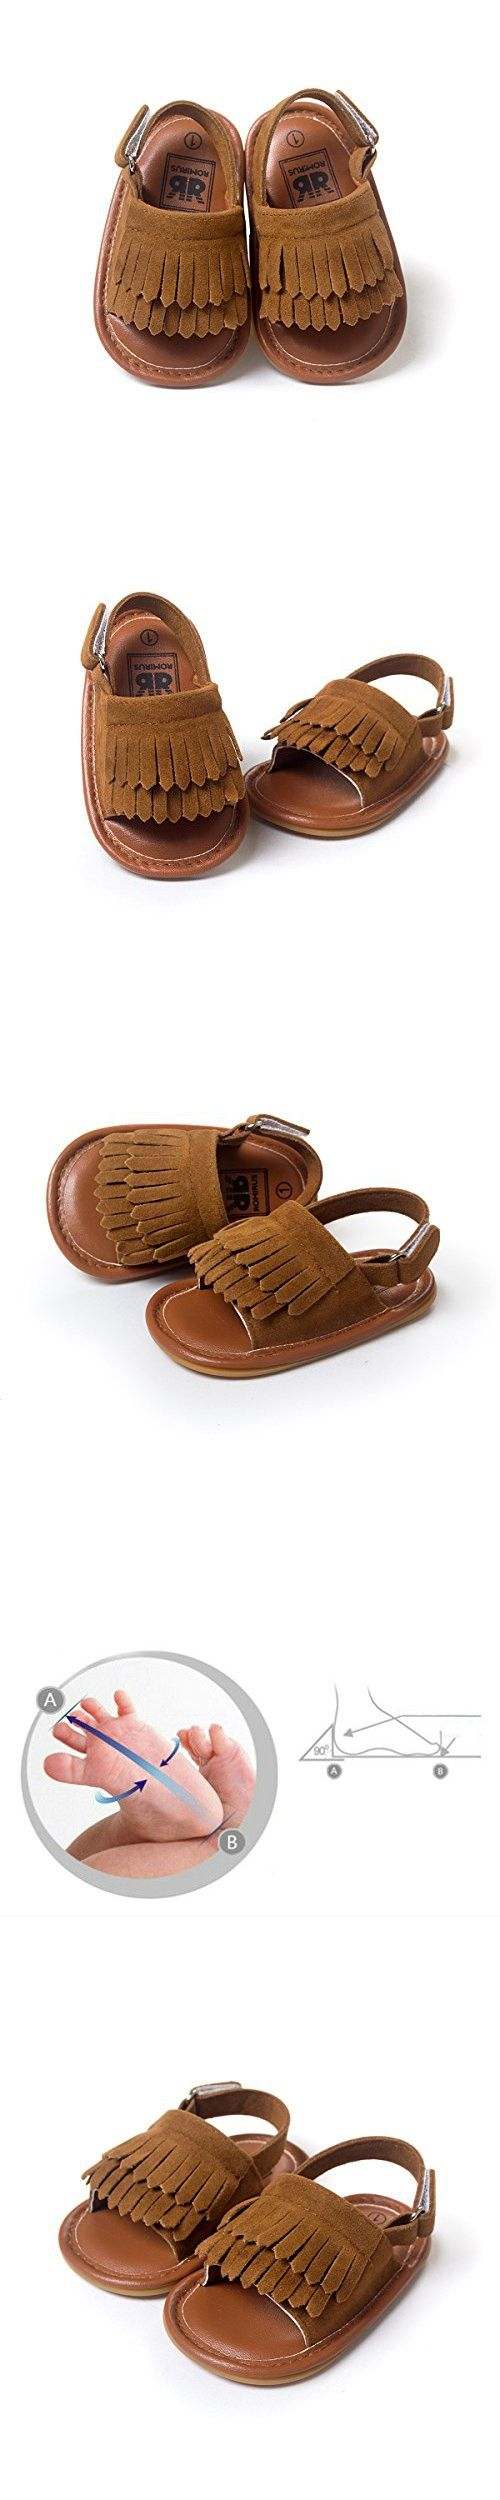 LIVEBOX Infant Baby Girls Moccasins Tassels Premium Soft Rubber Sole Anti-Slip Summer Prewalker Toddler Sandals(S: 0~6 months,Chocolate)